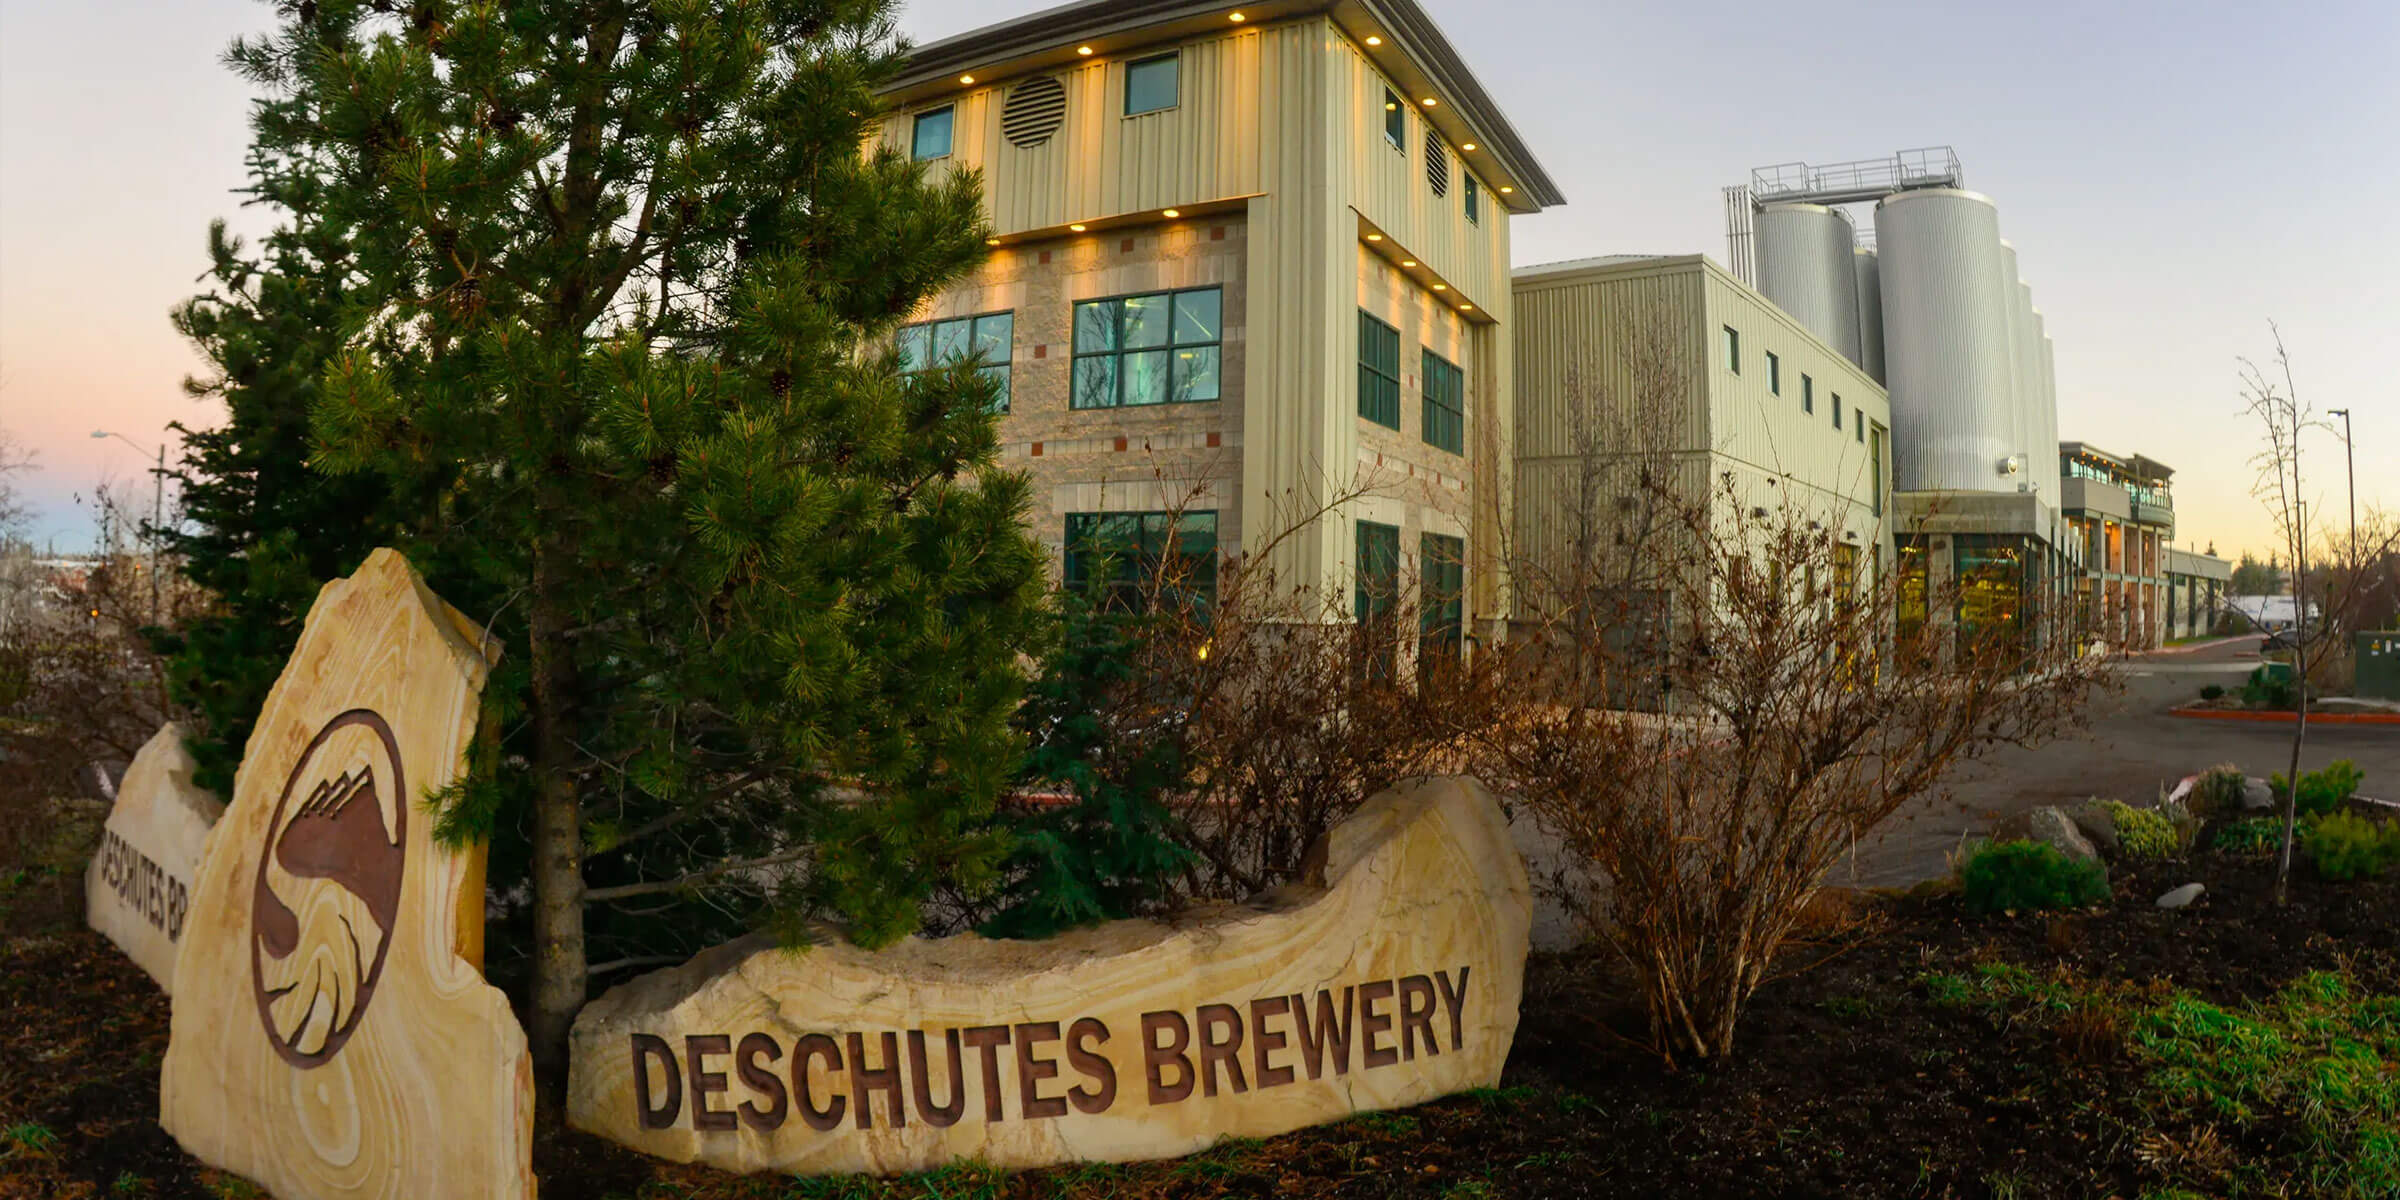 Outside the Deschutes Brewery headquarters in Bend, Oregon